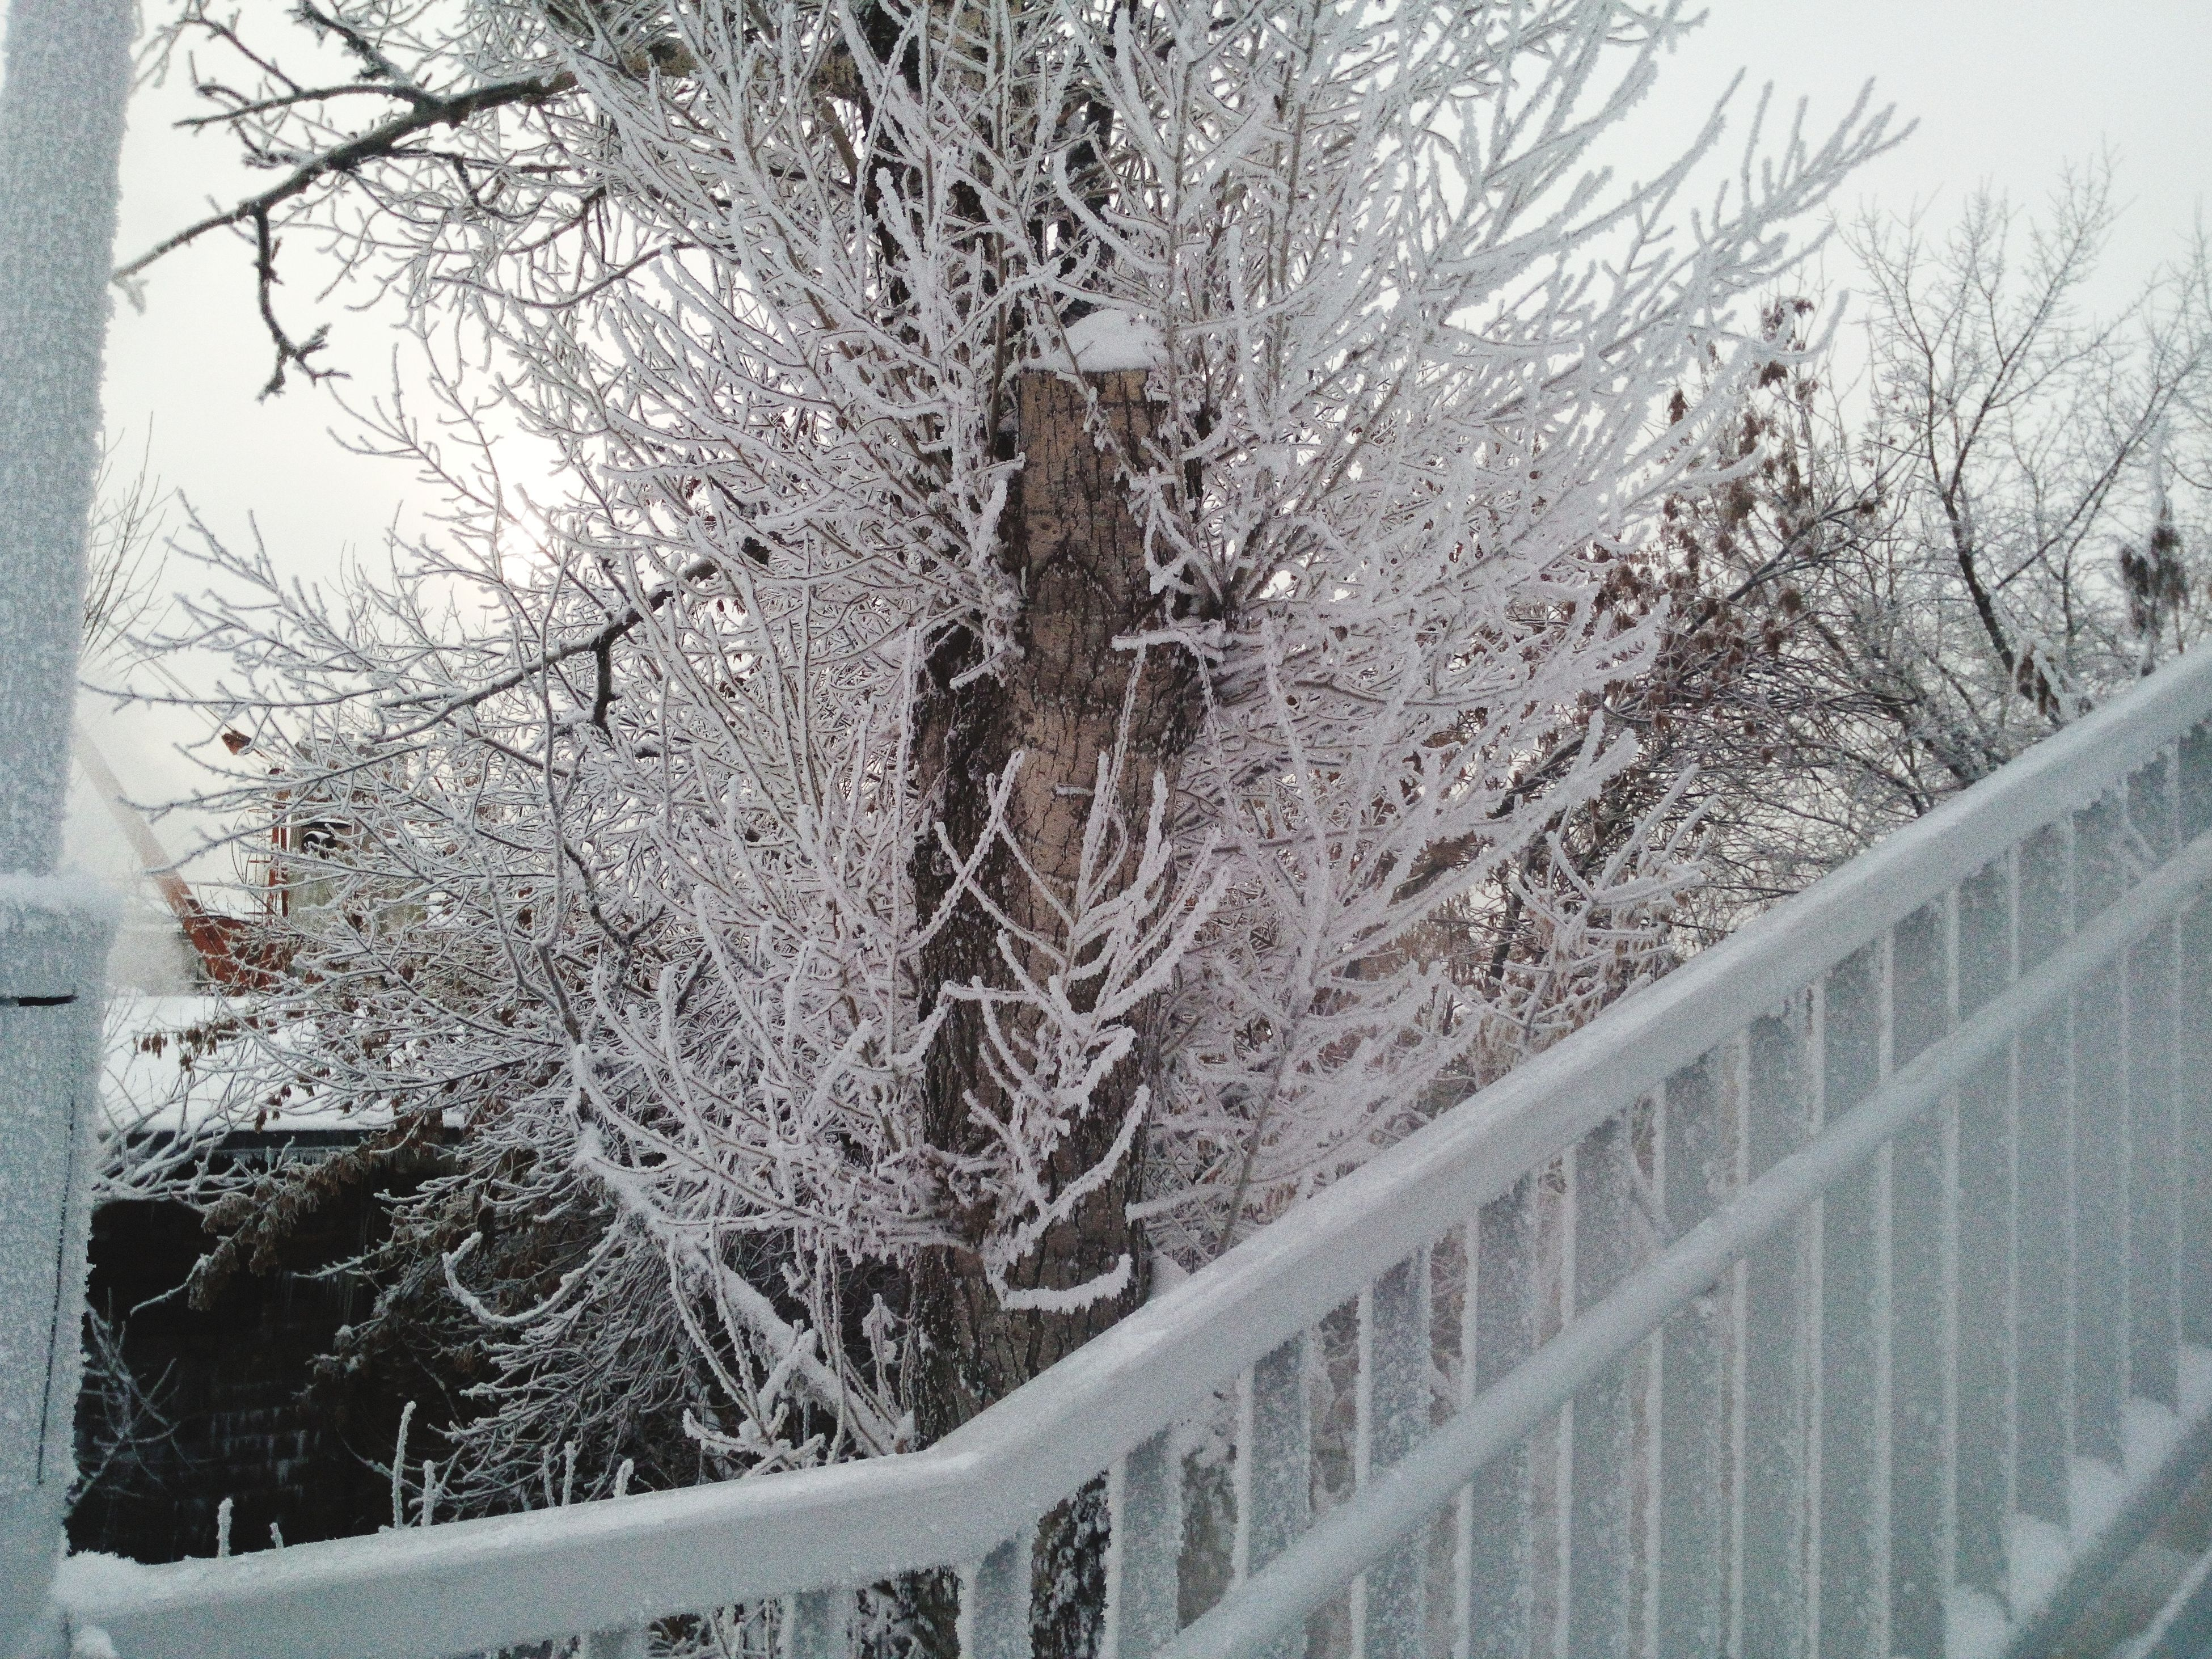 tree, bare tree, winter, branch, snow, cold temperature, nature, tree trunk, season, tranquility, day, growth, frozen, outdoors, weather, covering, beauty in nature, no people, built structure, railing